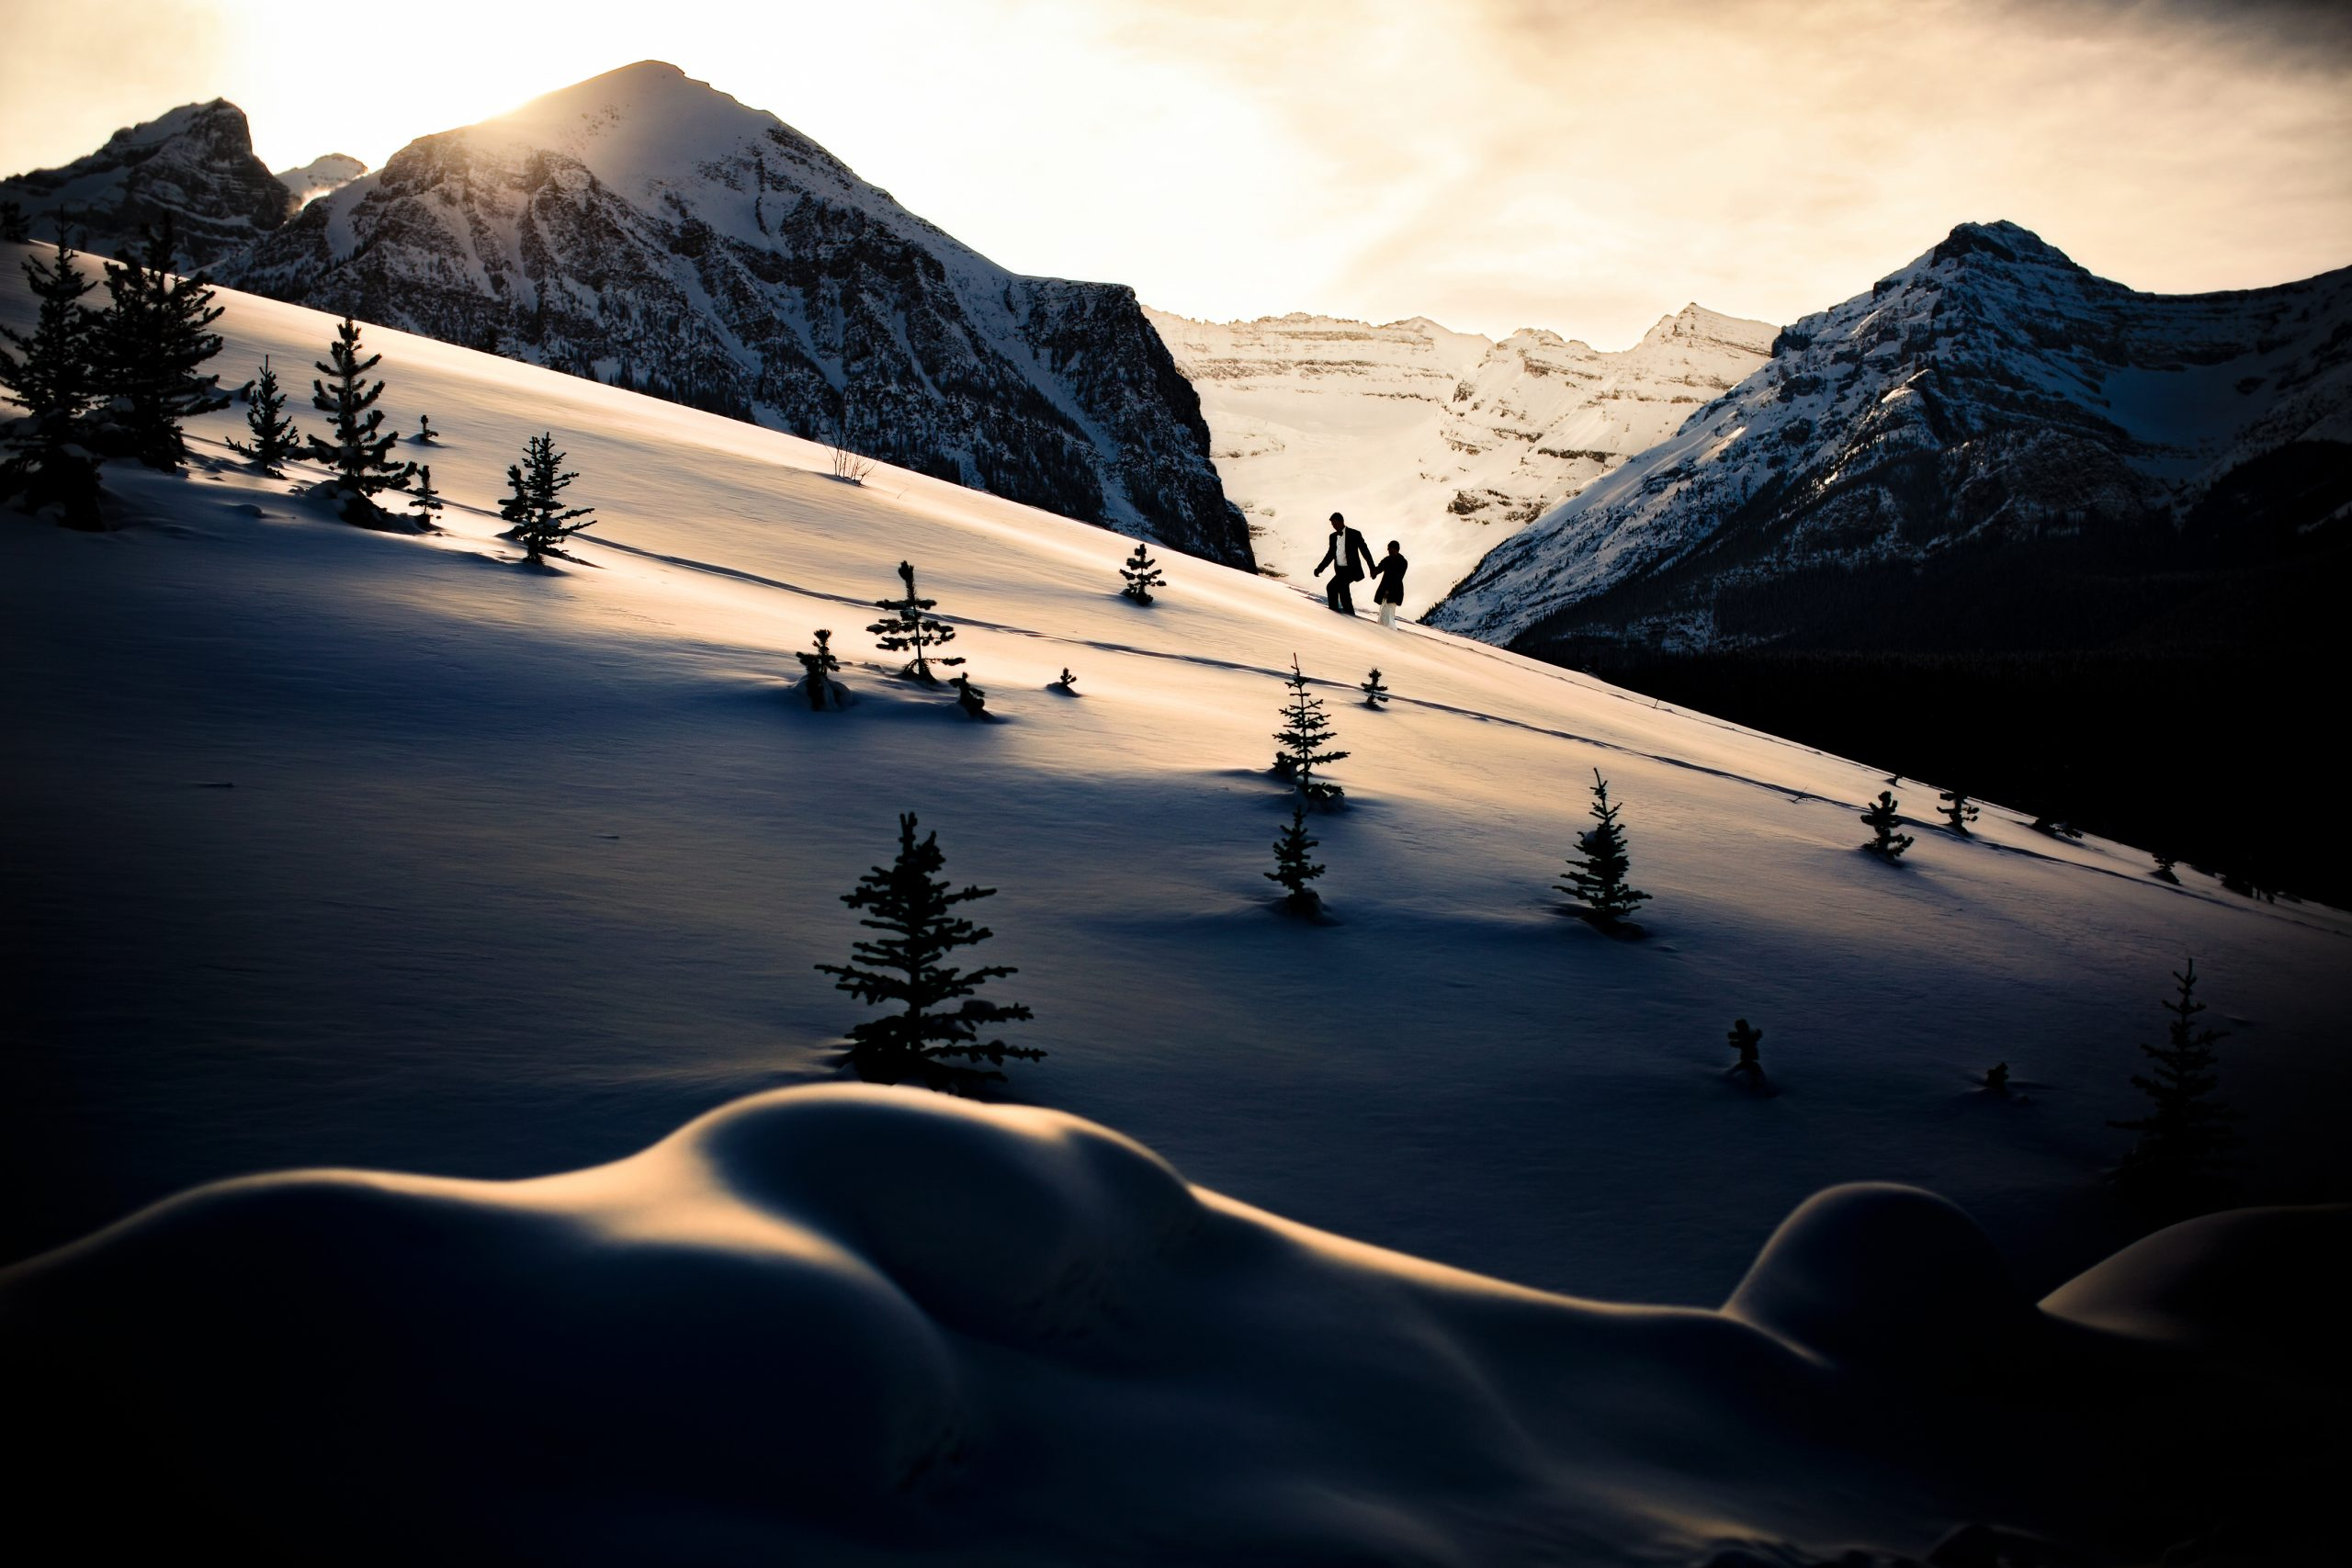 A couple walk among the mountains on a frosty winter morning.